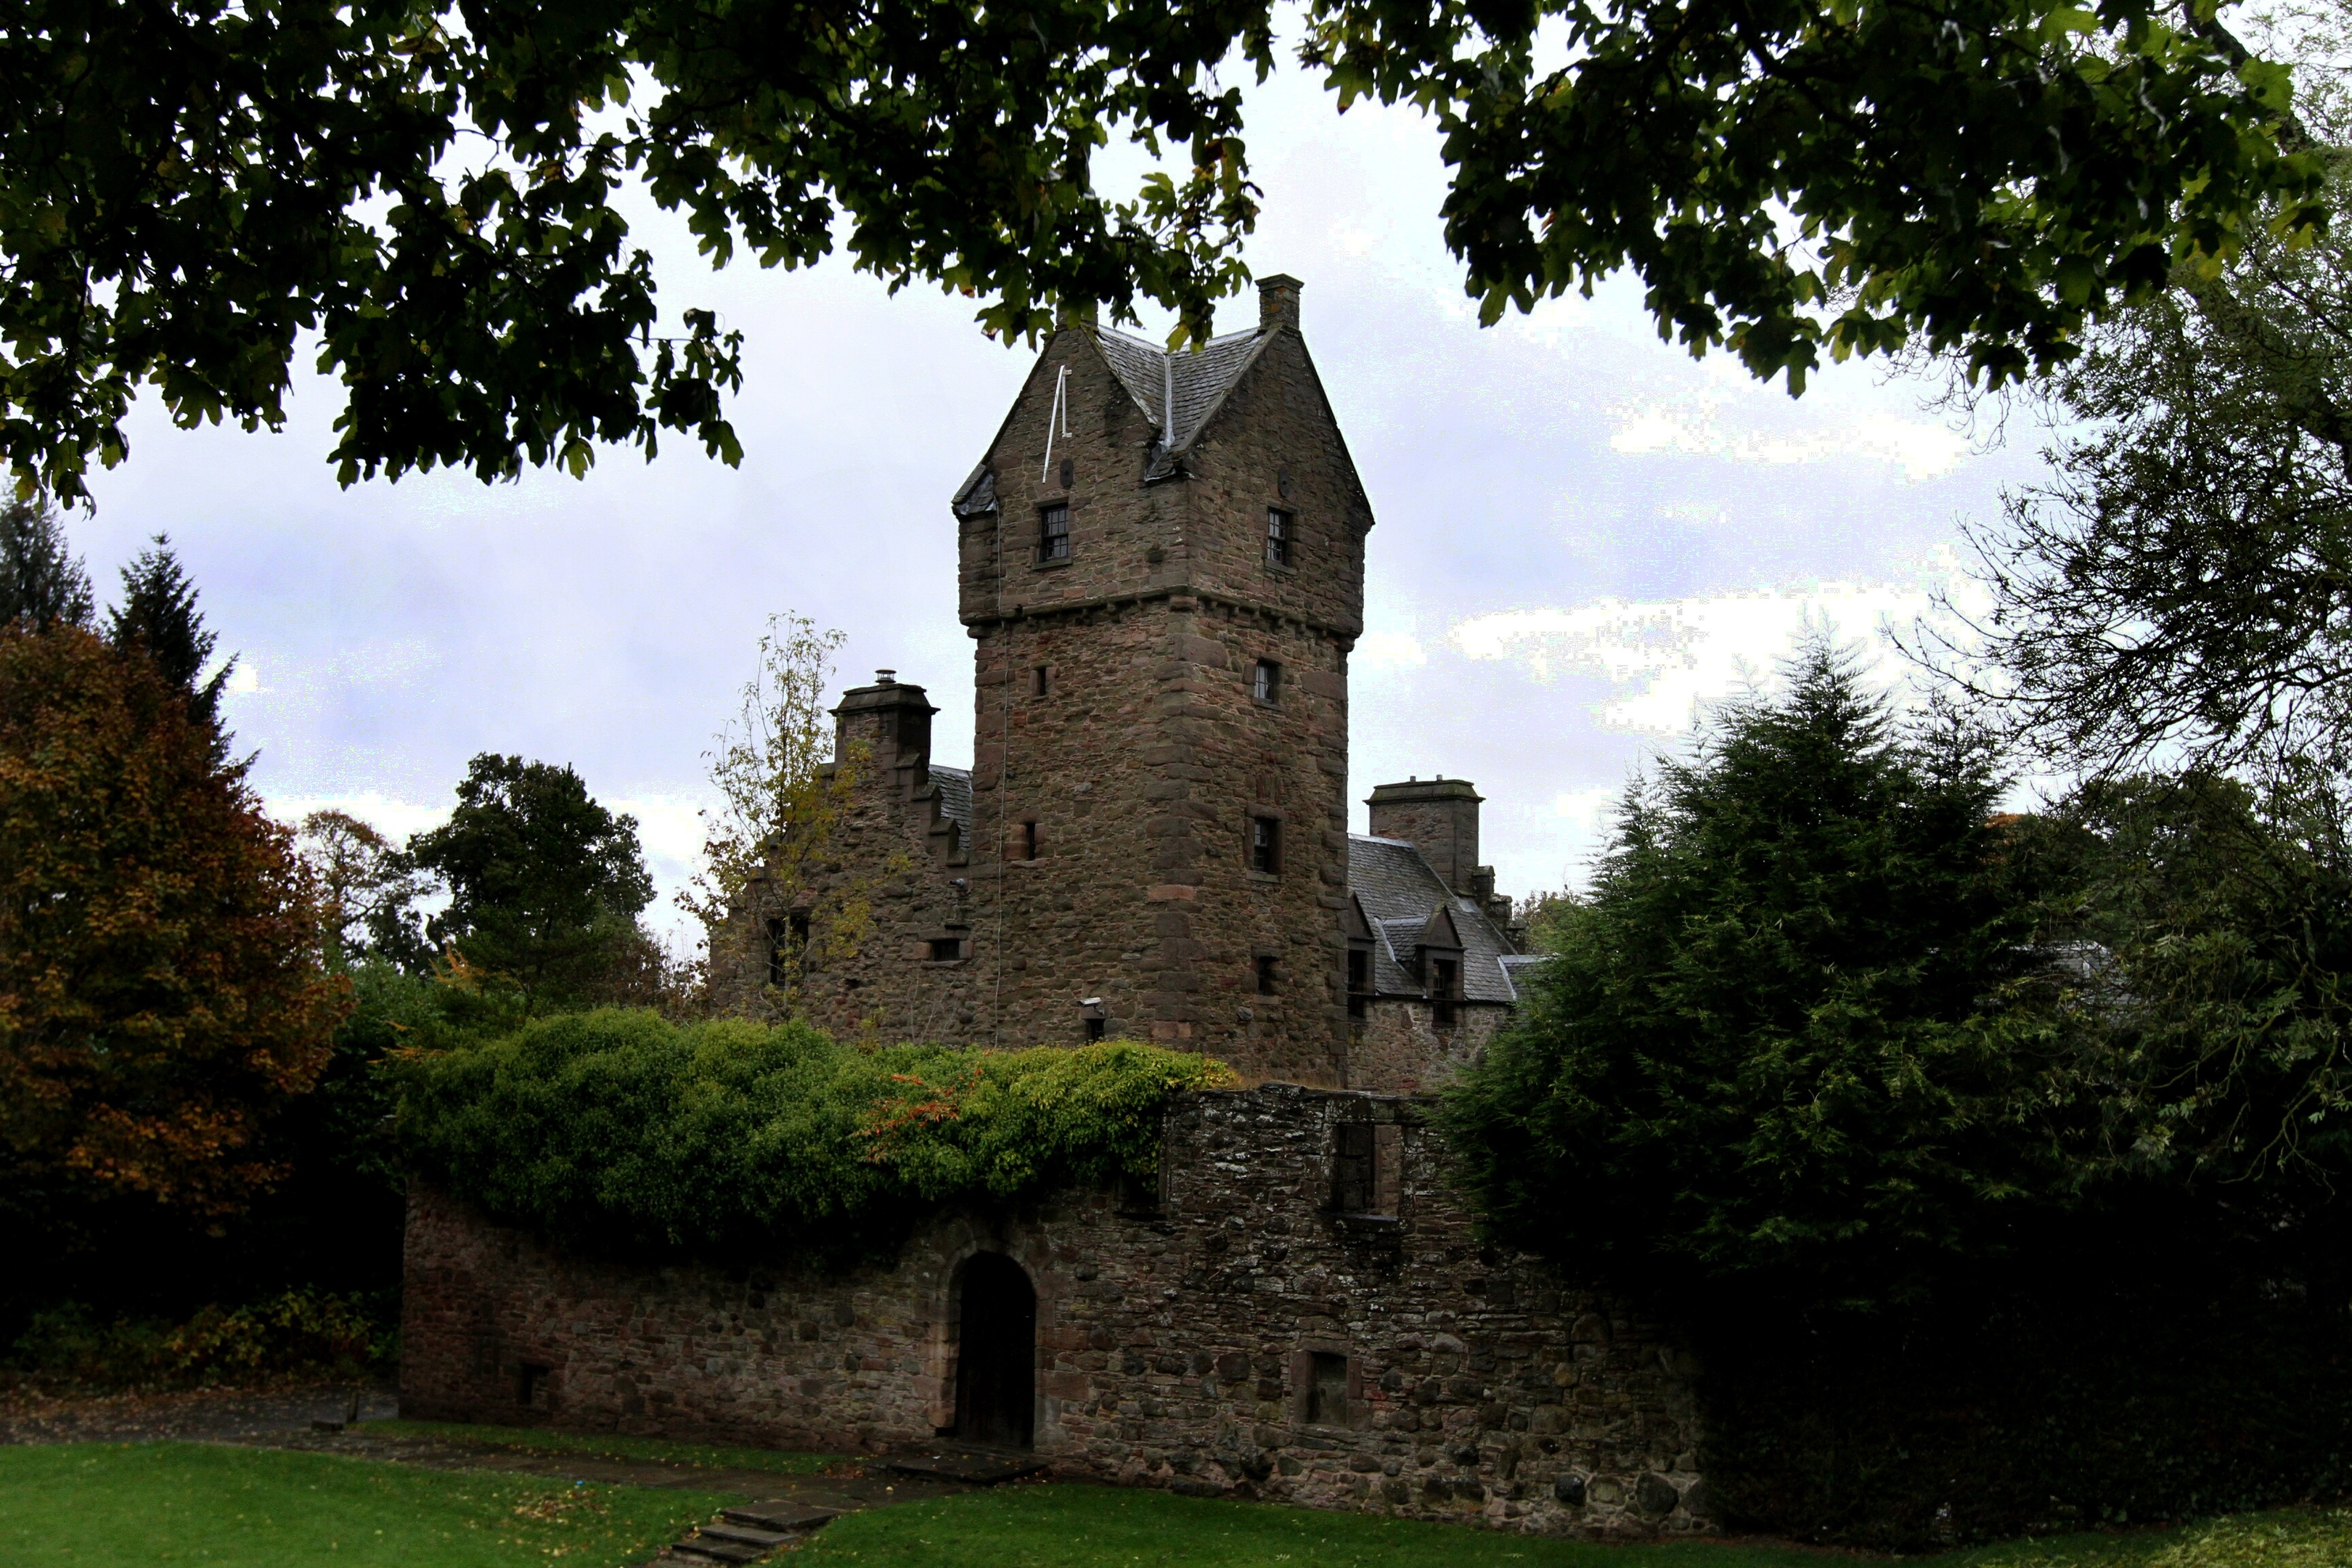 The festival will be held at Mains Castle